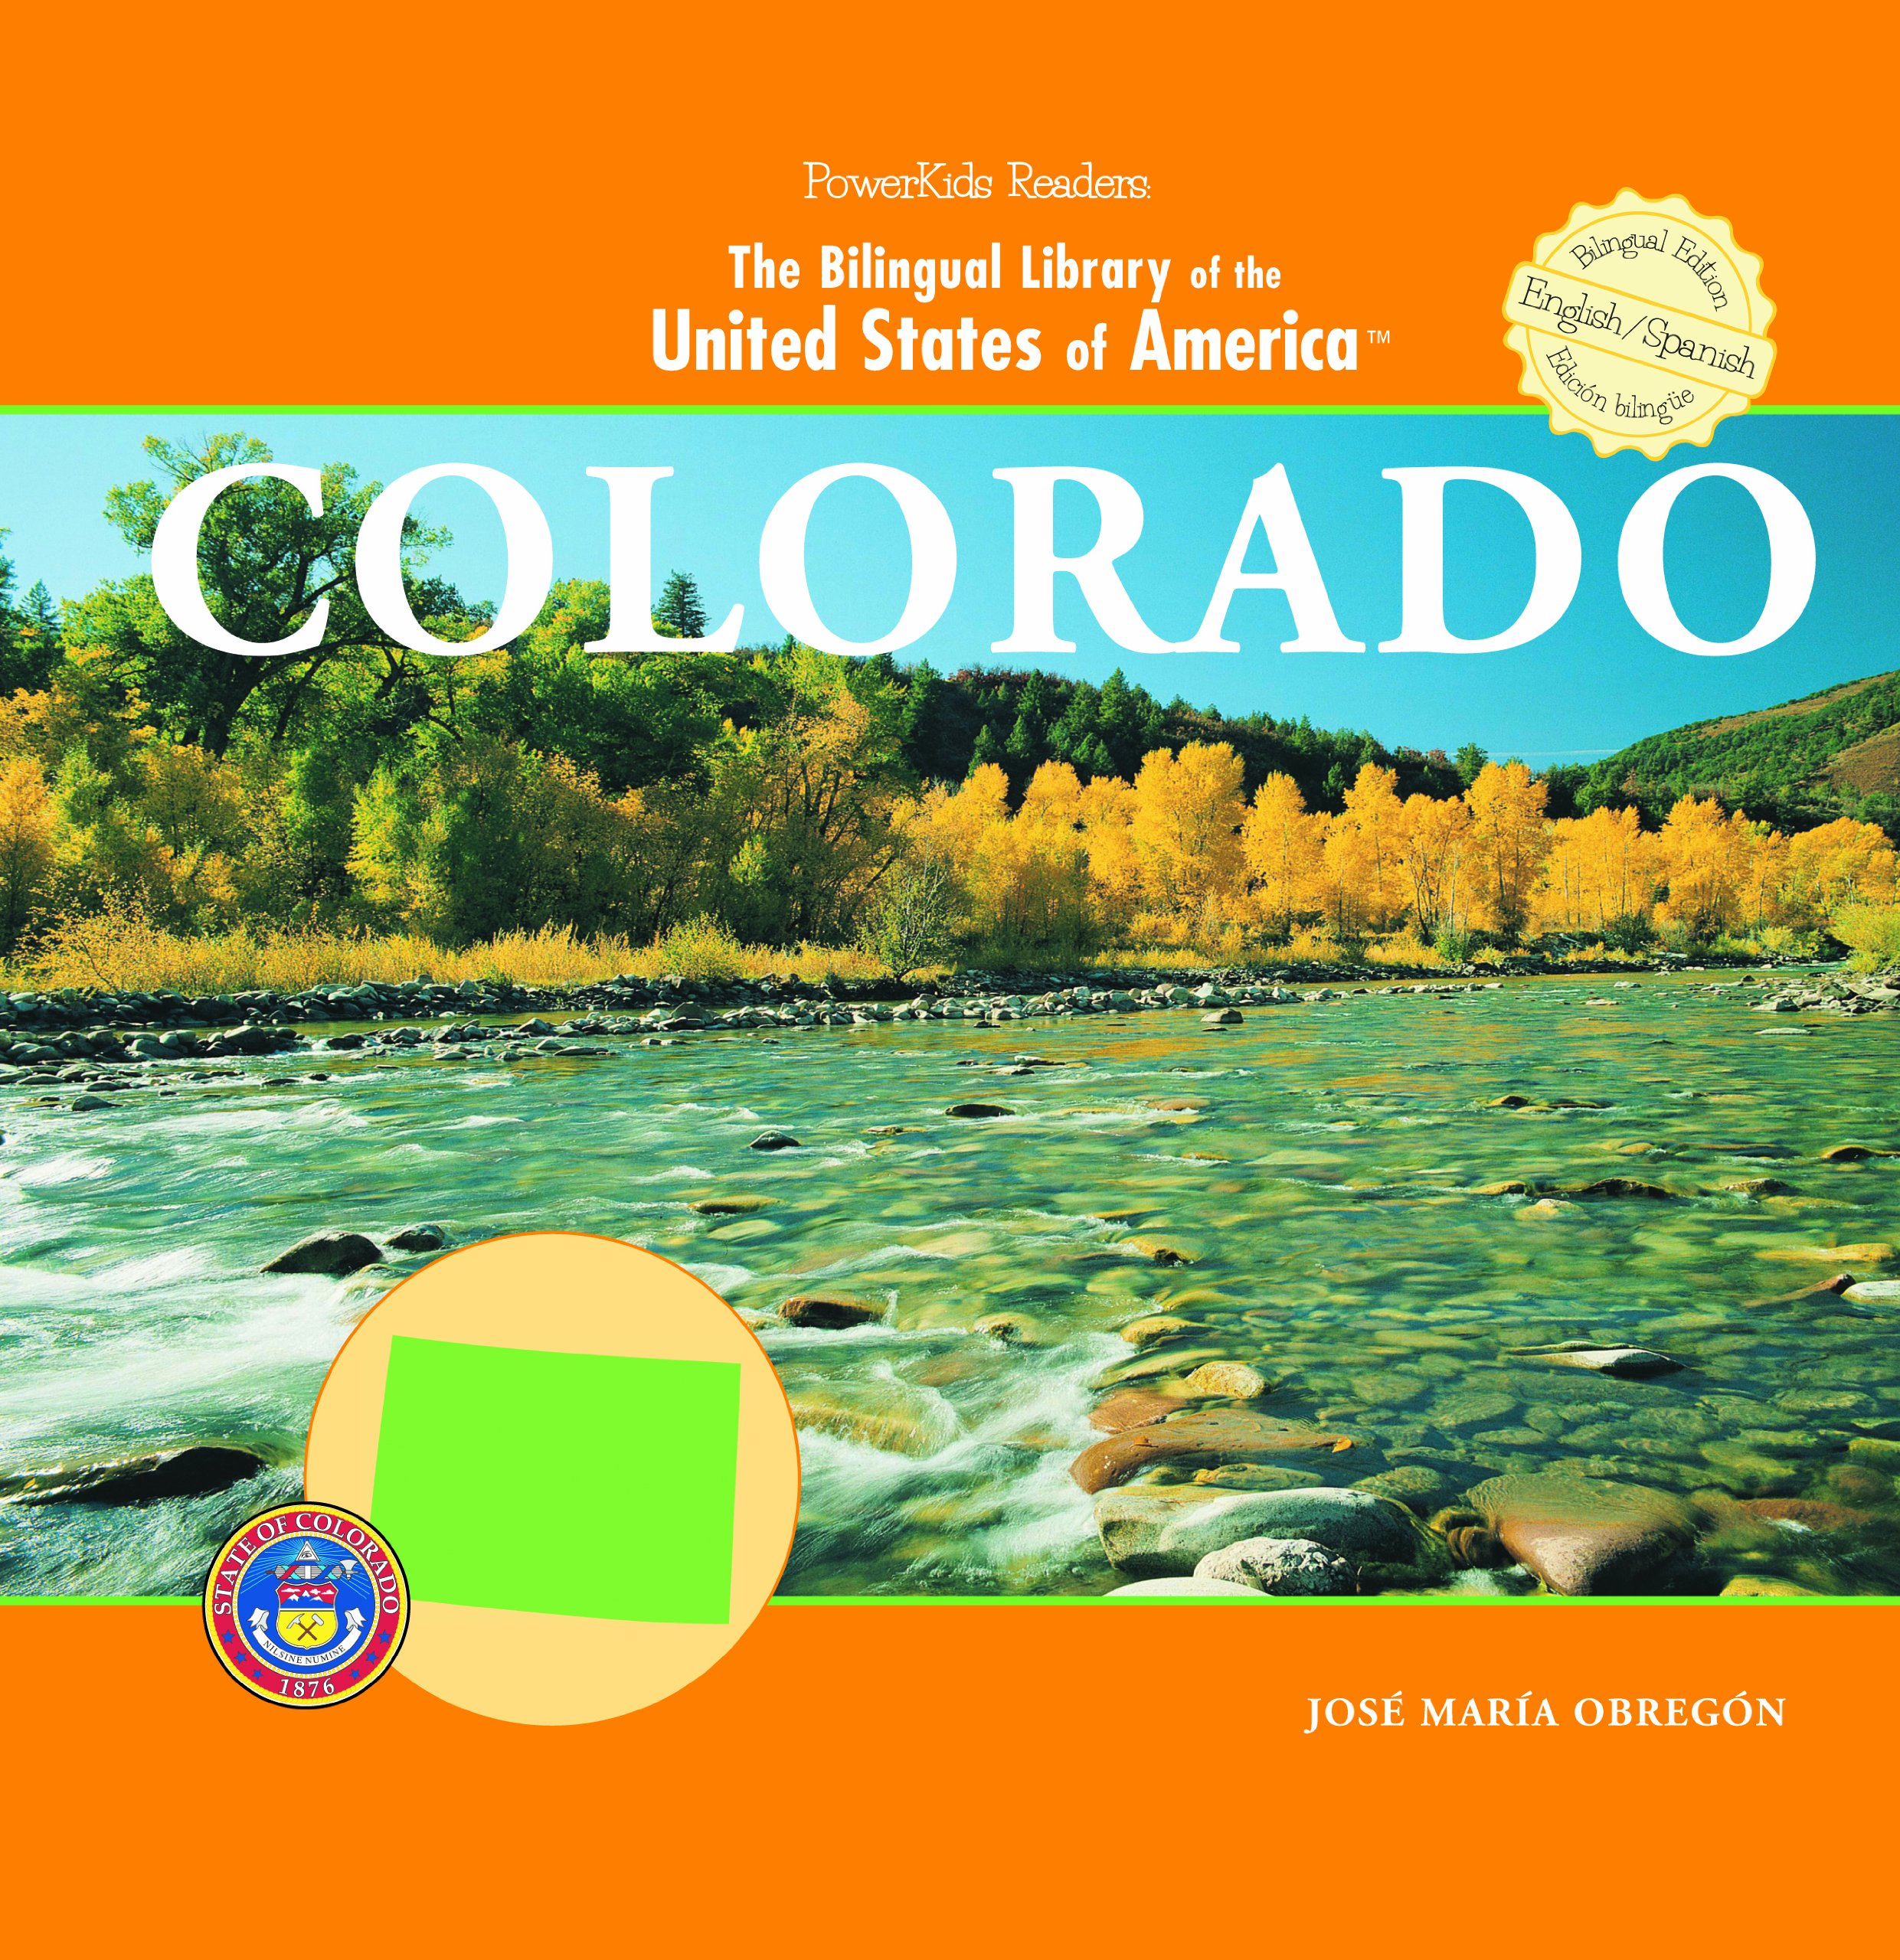 Download Colorado (Powerkids Readers: Bilingual Library of the United States of America) (English and Spanish Edition) ebook